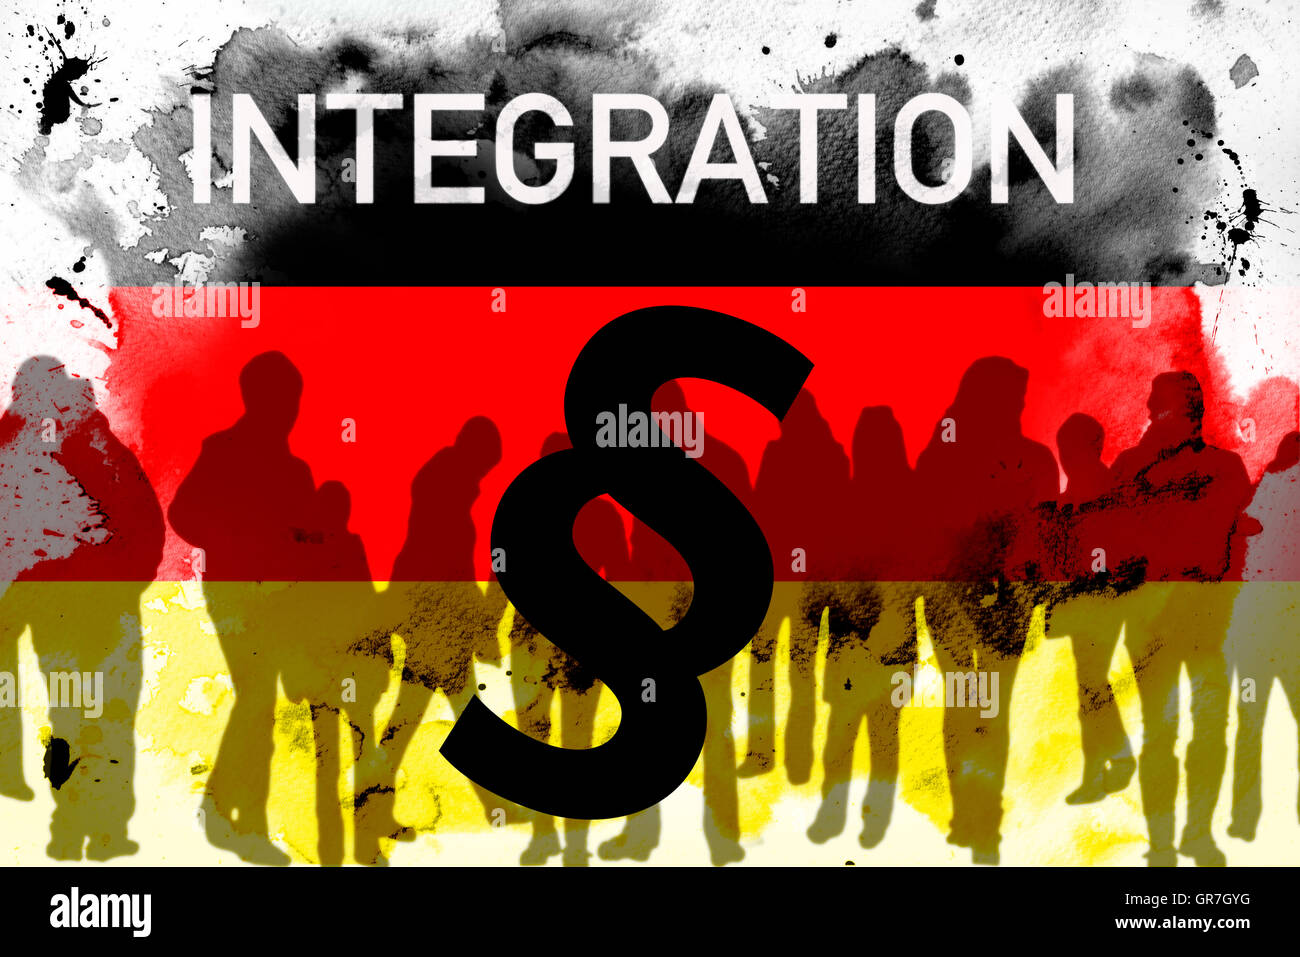 The Word Integration And Paragraph Sign On German Flag - Stock Image